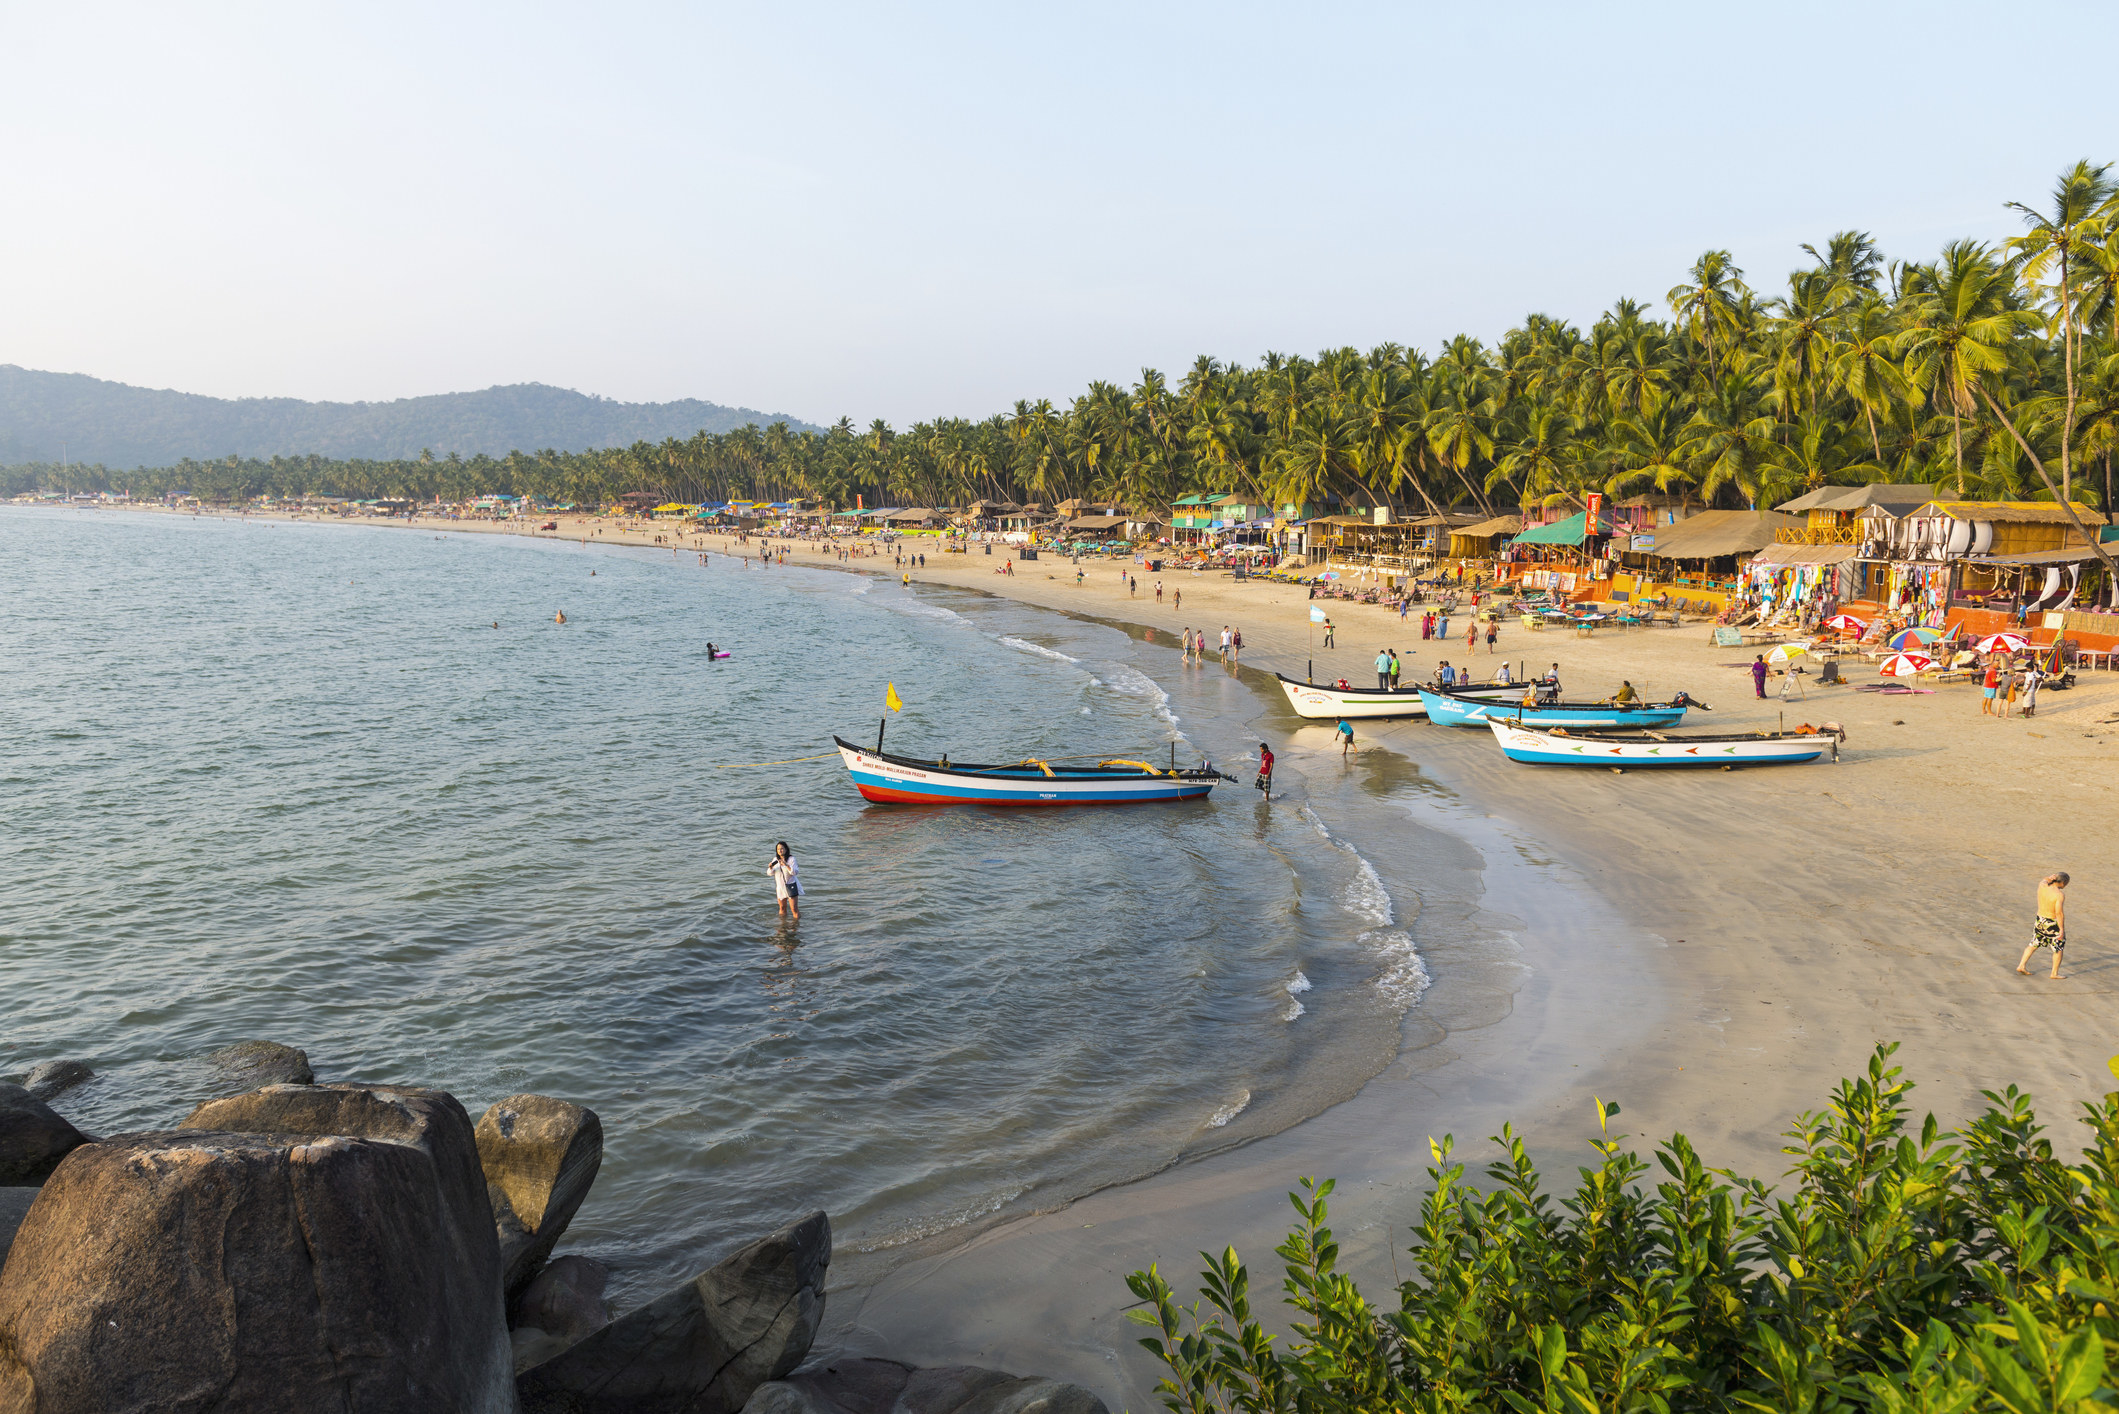 A beach with boats and people in Goa, India